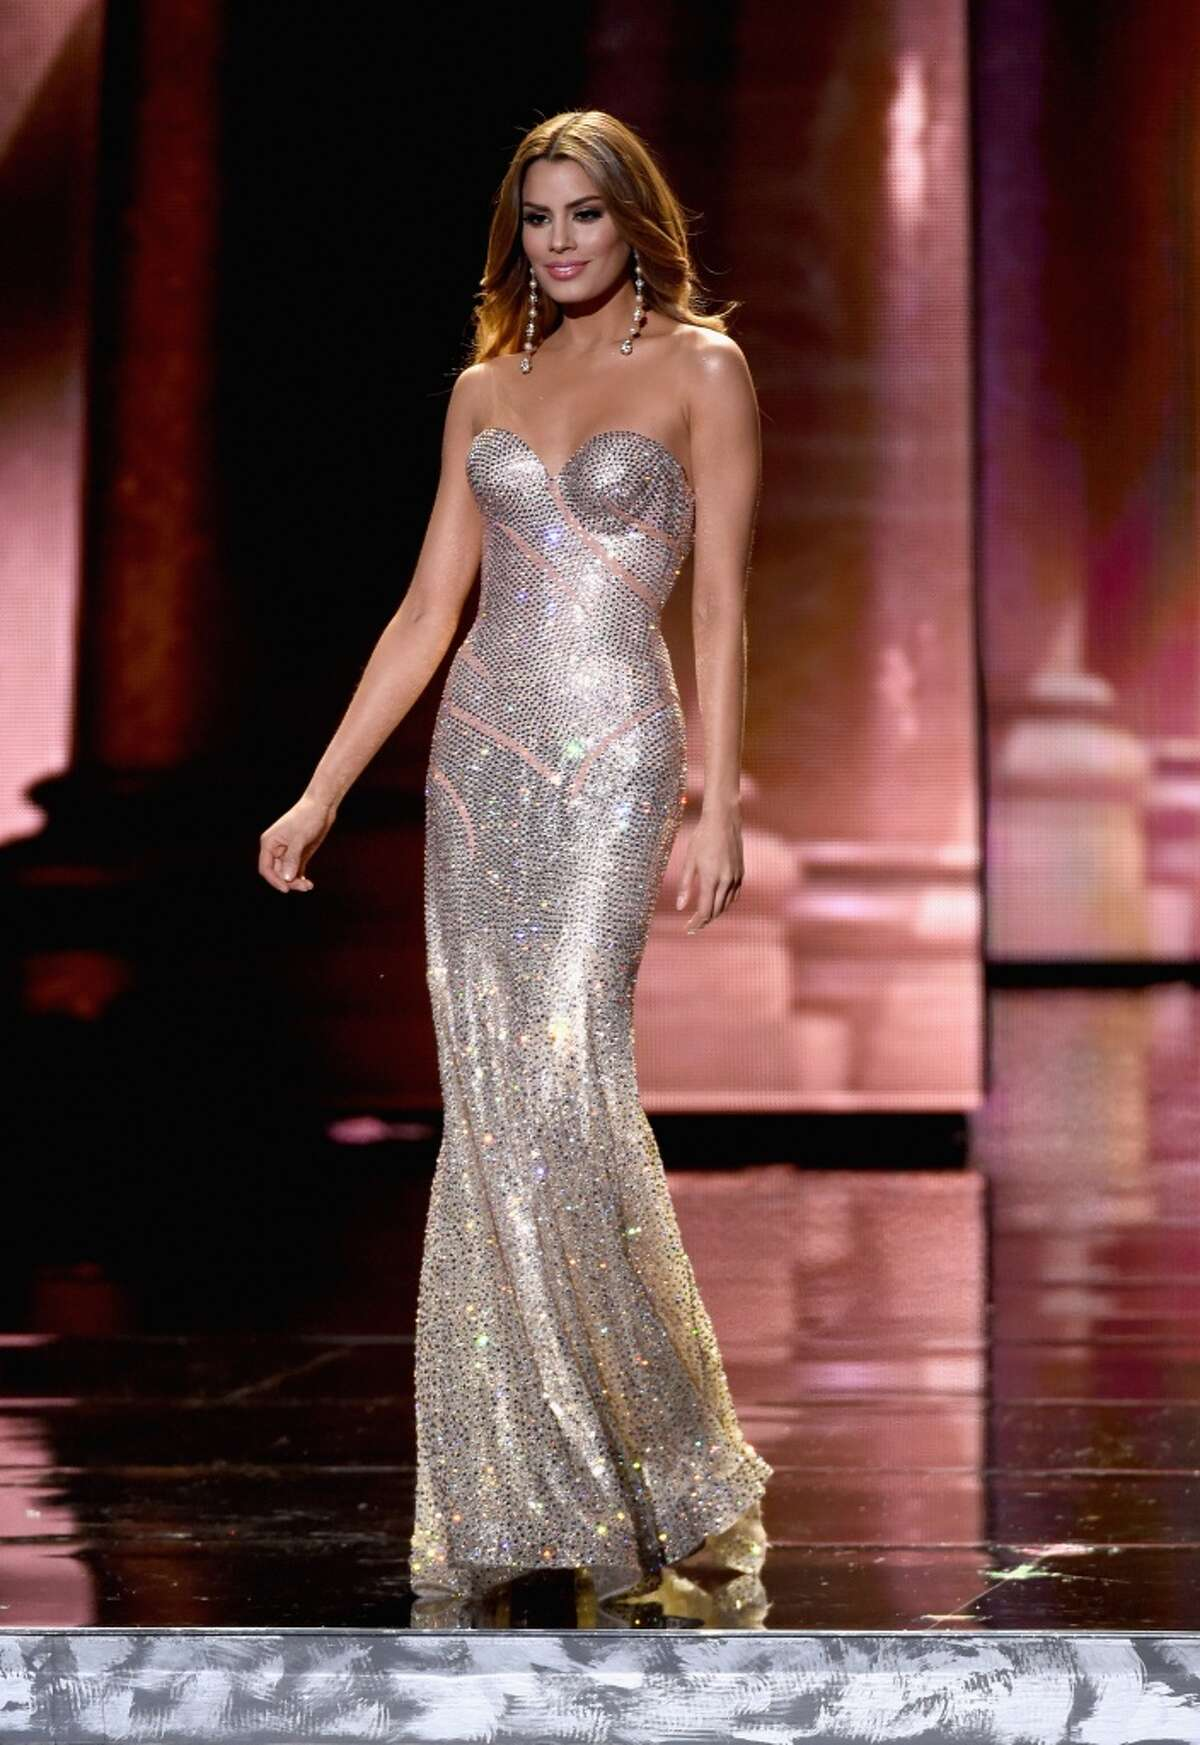 Miss Colombia 2015, Ariadna Gutierrez, competes in the evening gown competition during the 2015 Miss Universe Pageant at The Axis at Planet Hollywood Resort & Casino on December 20, 2015 in Las Vegas, Nevada.